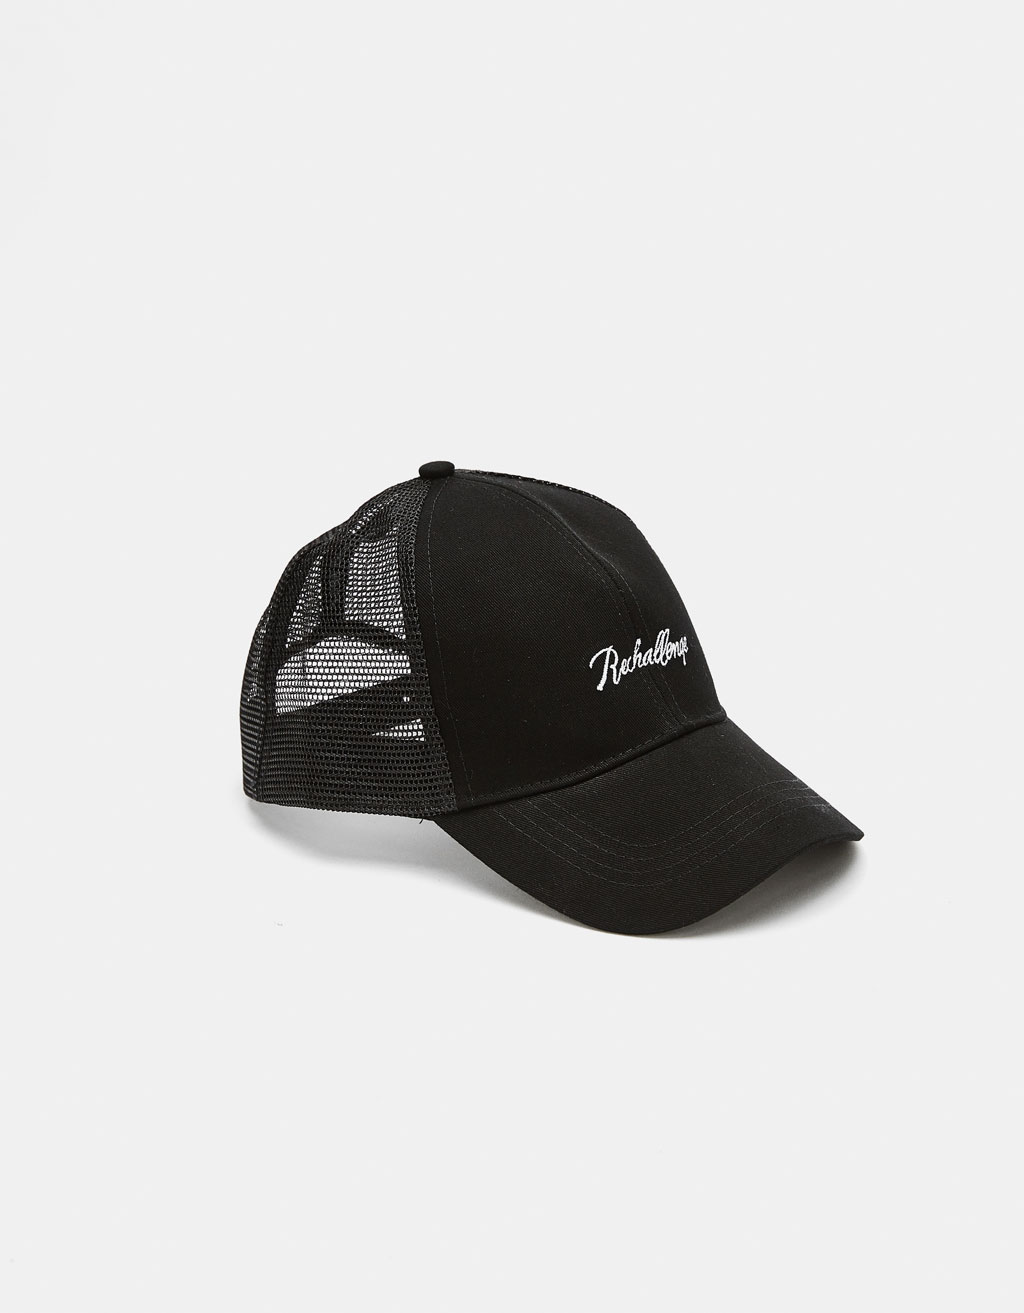 Mesh cap with embroidery